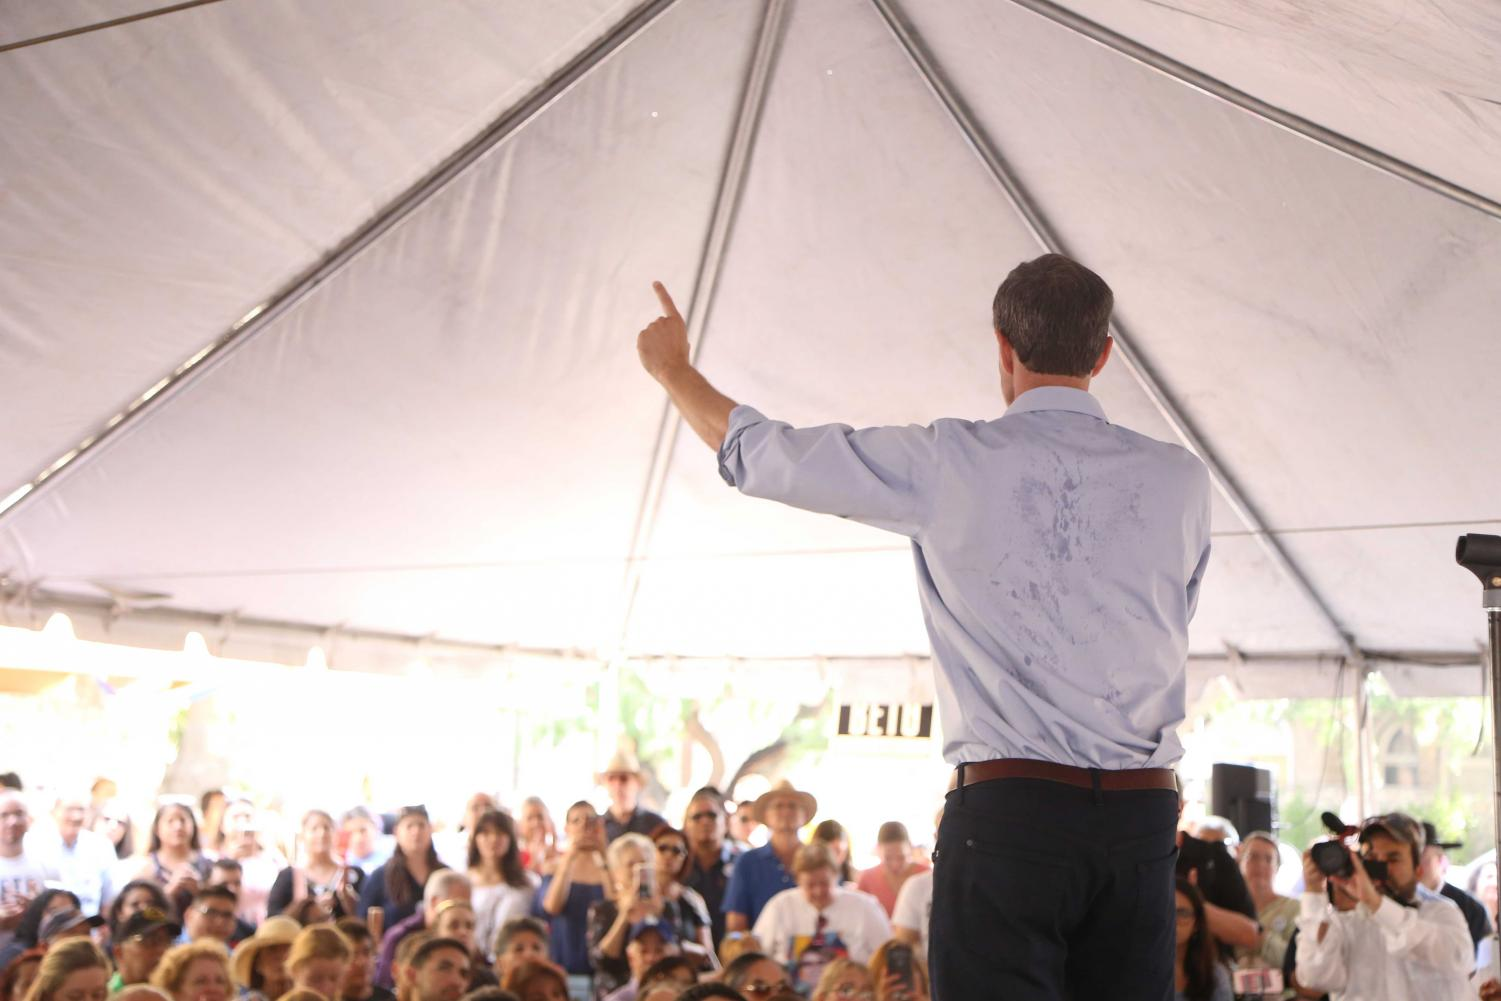 Congressmen+Beto%27Rourke+addresses+the+crowd+at+his+Mariachi+and+menudo+breakfast+rally%2C+on+Sunday%2C+June+29.+